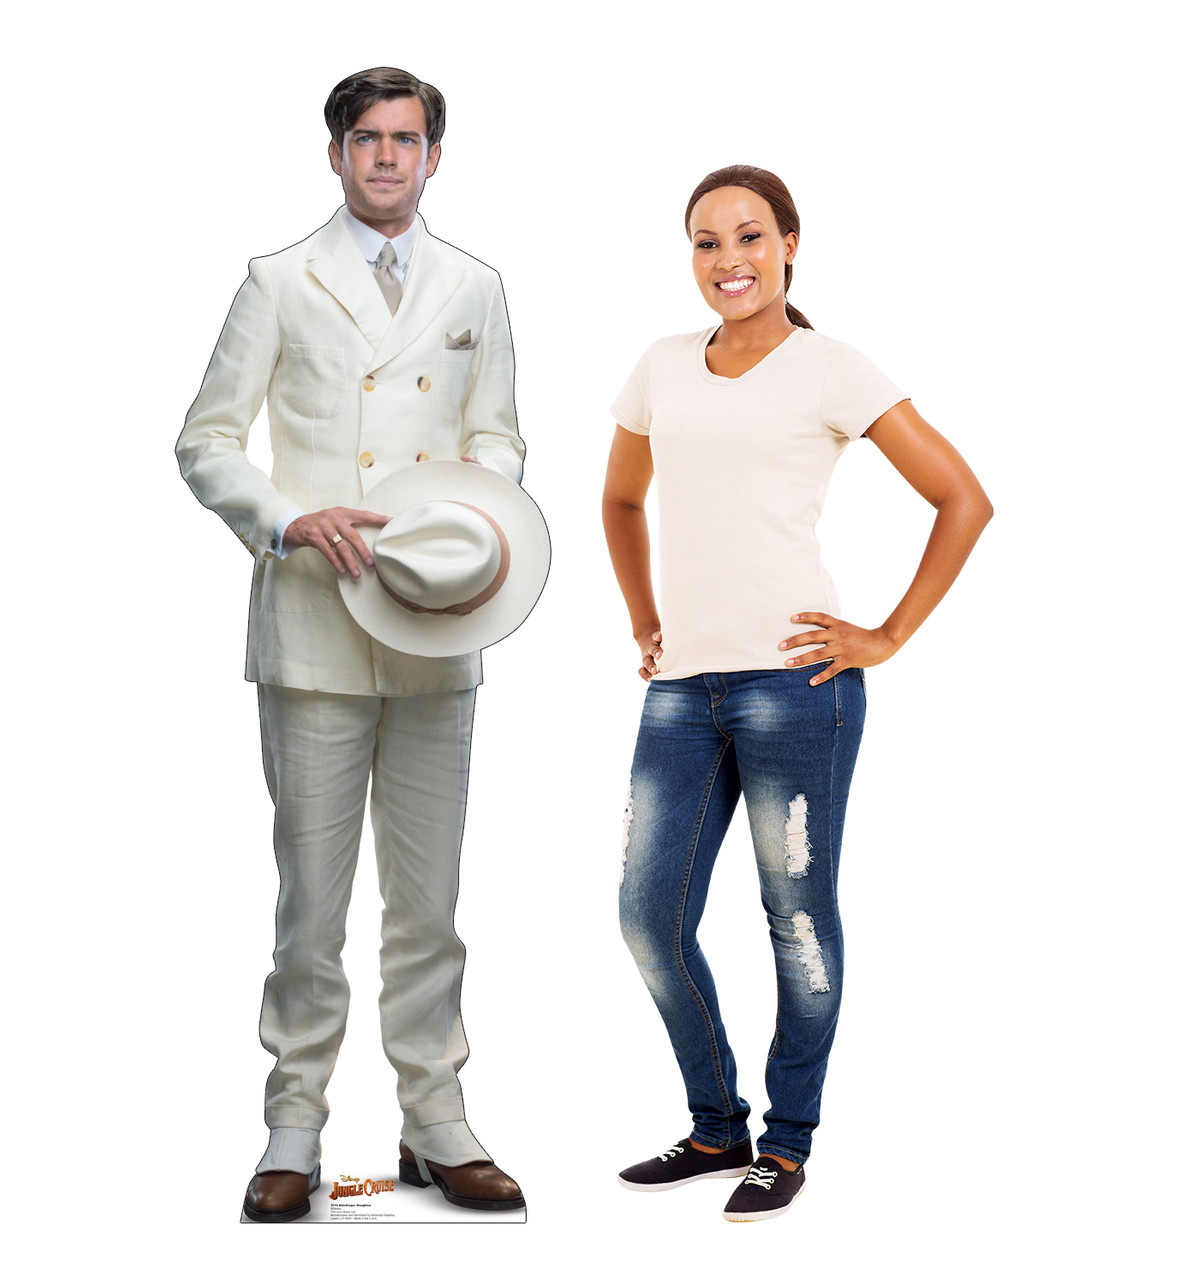 Life-size cardboard standee of MacGregor Houghton from Jungle Cruise with model.